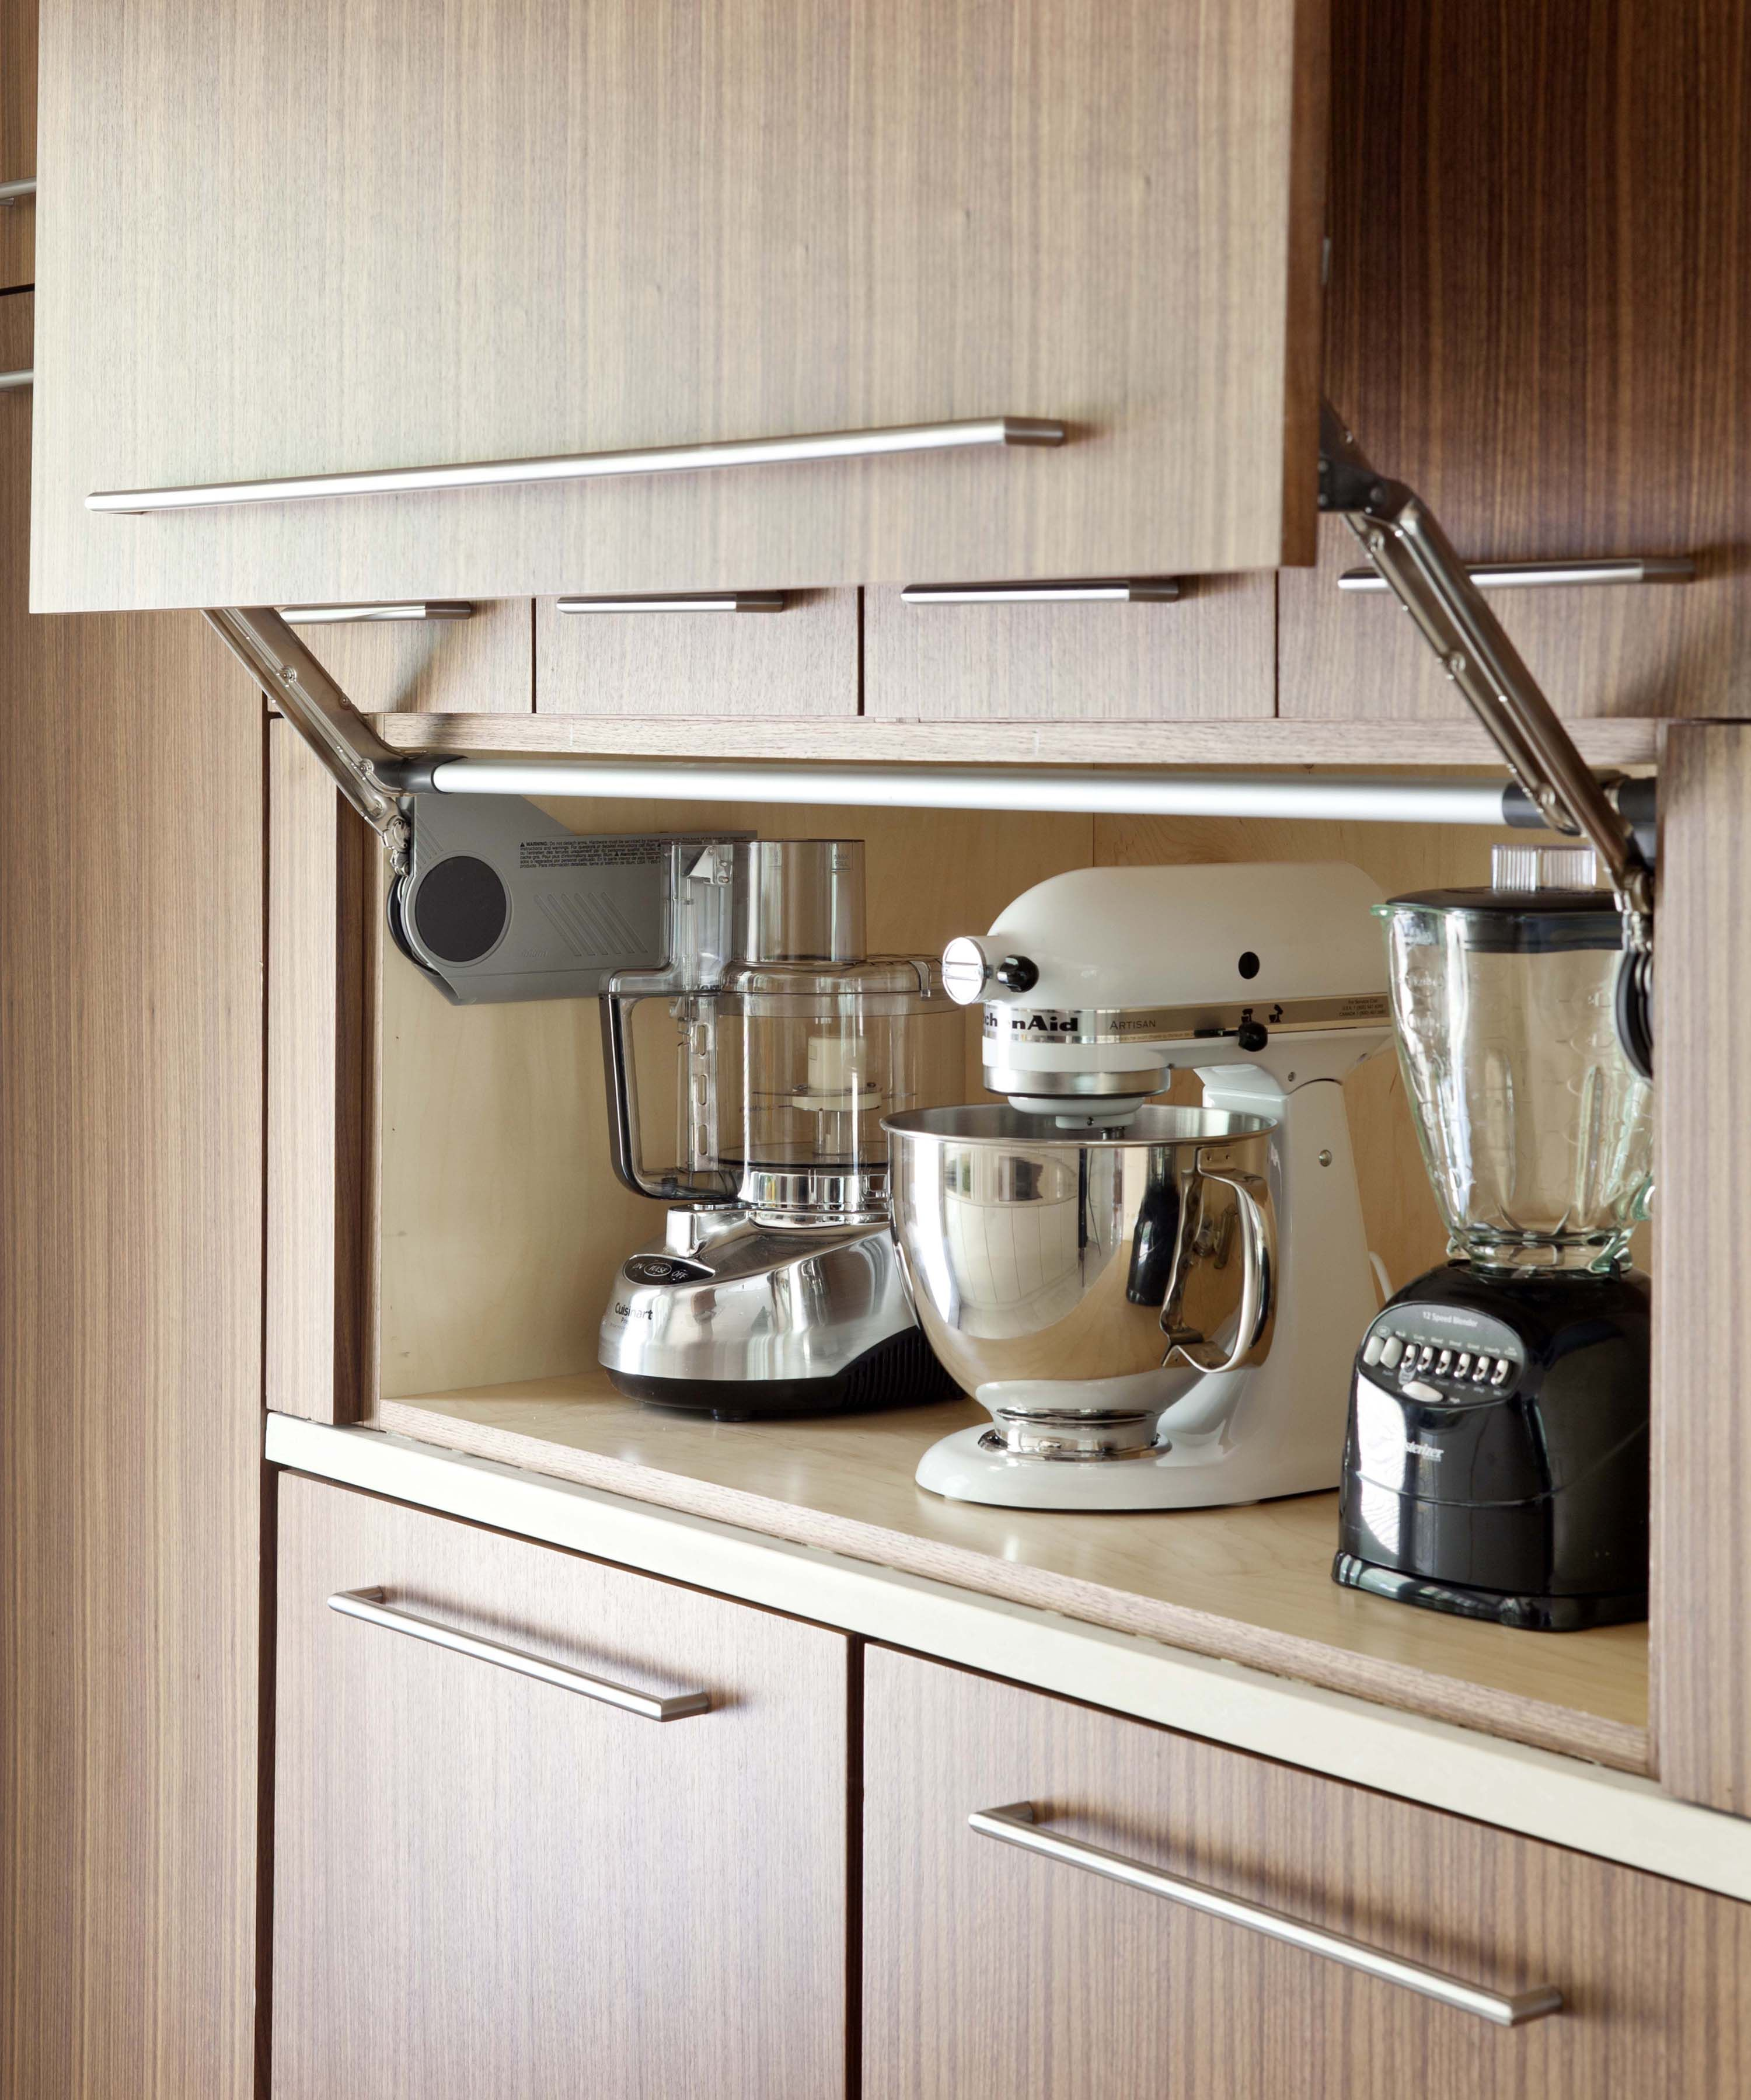 Kitchen Appliance Storage: Great To Have To Keep The Counters Clean.